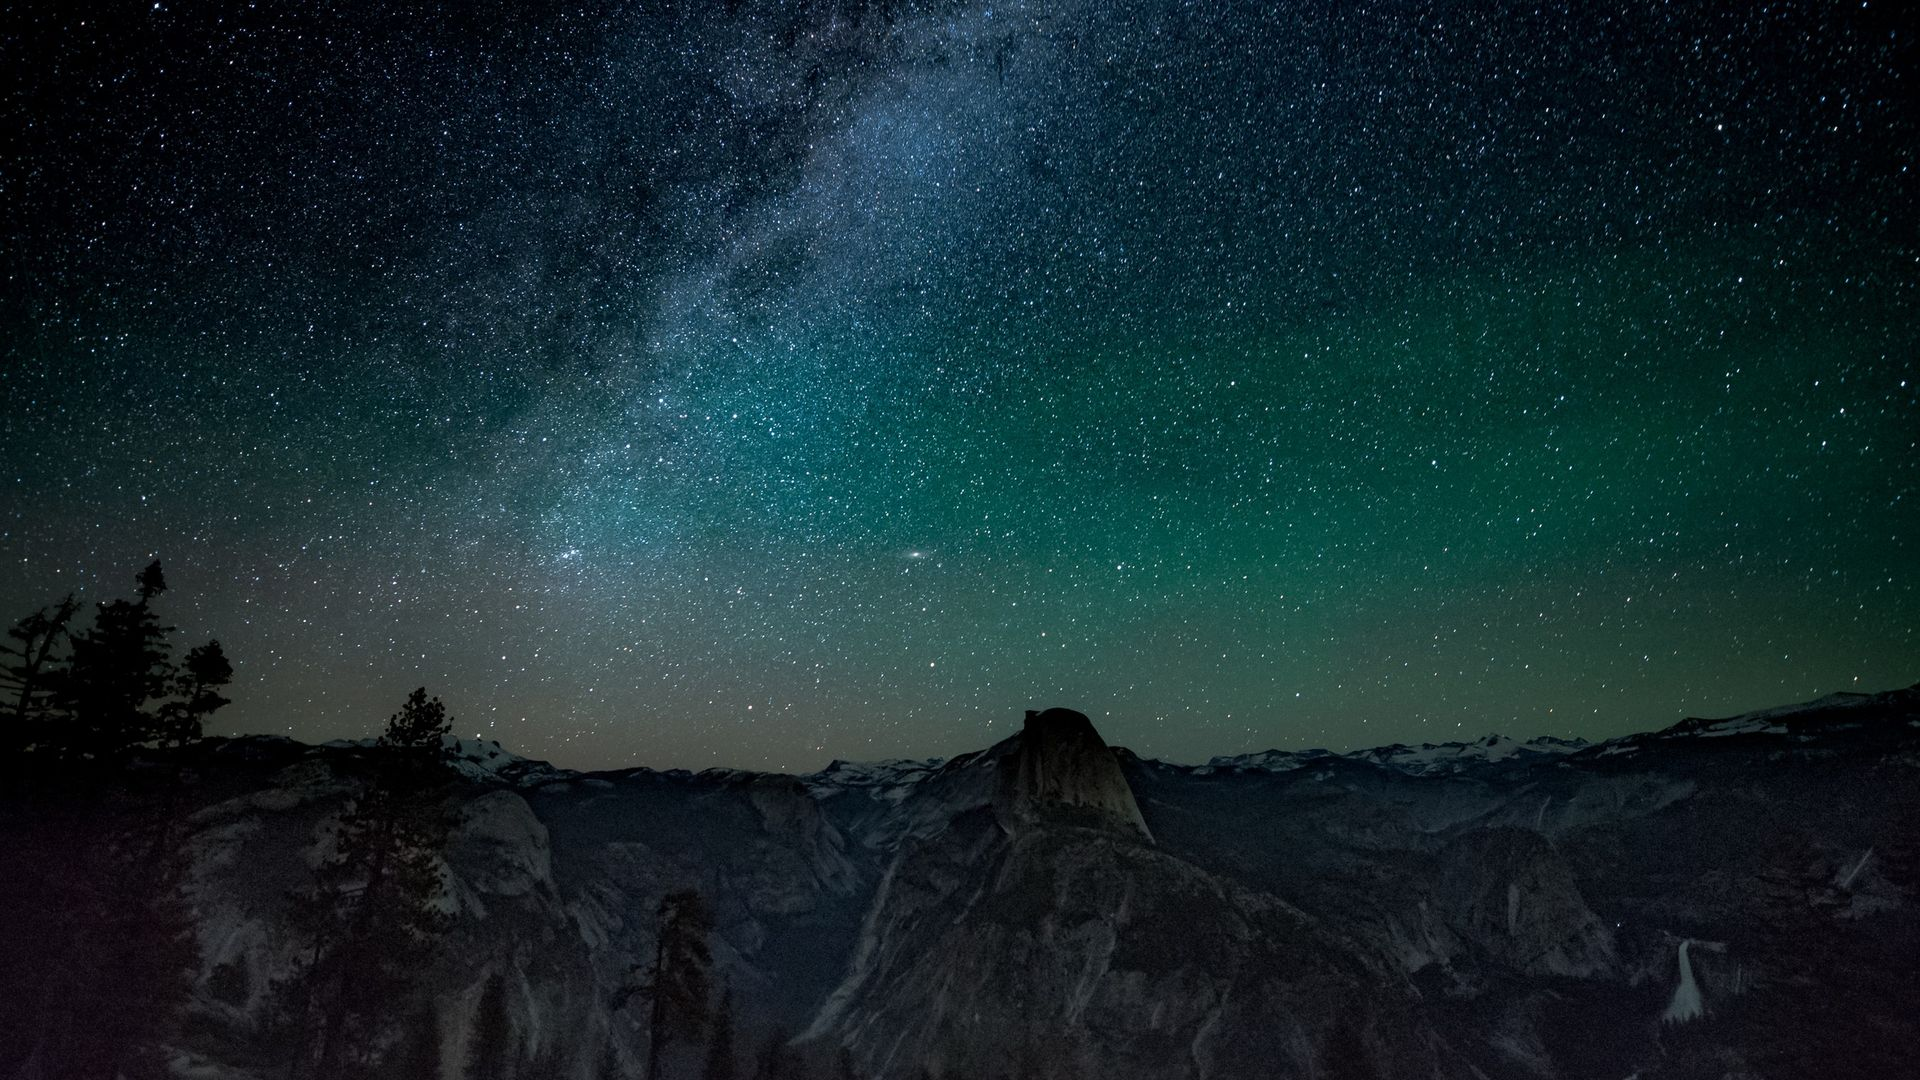 direction,fashion,state of nature,means,national,creation,park,night sky,heaven,way,milky,interior,natural state,yosemite,natural phenomenon,nature,subject